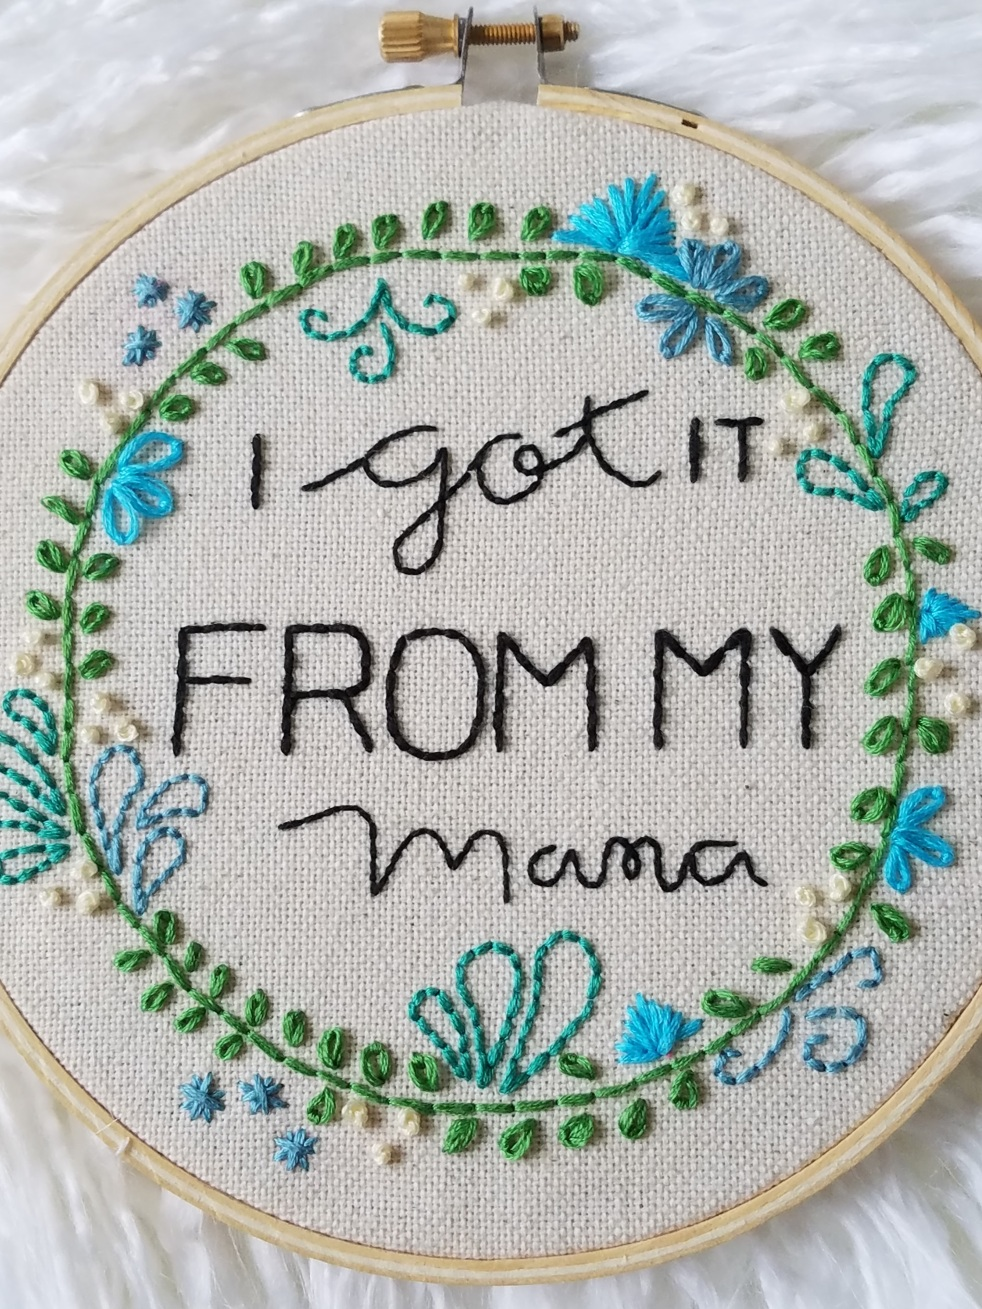 Mothers Day Gift Embroidery Hoop - DIY mother's day gift